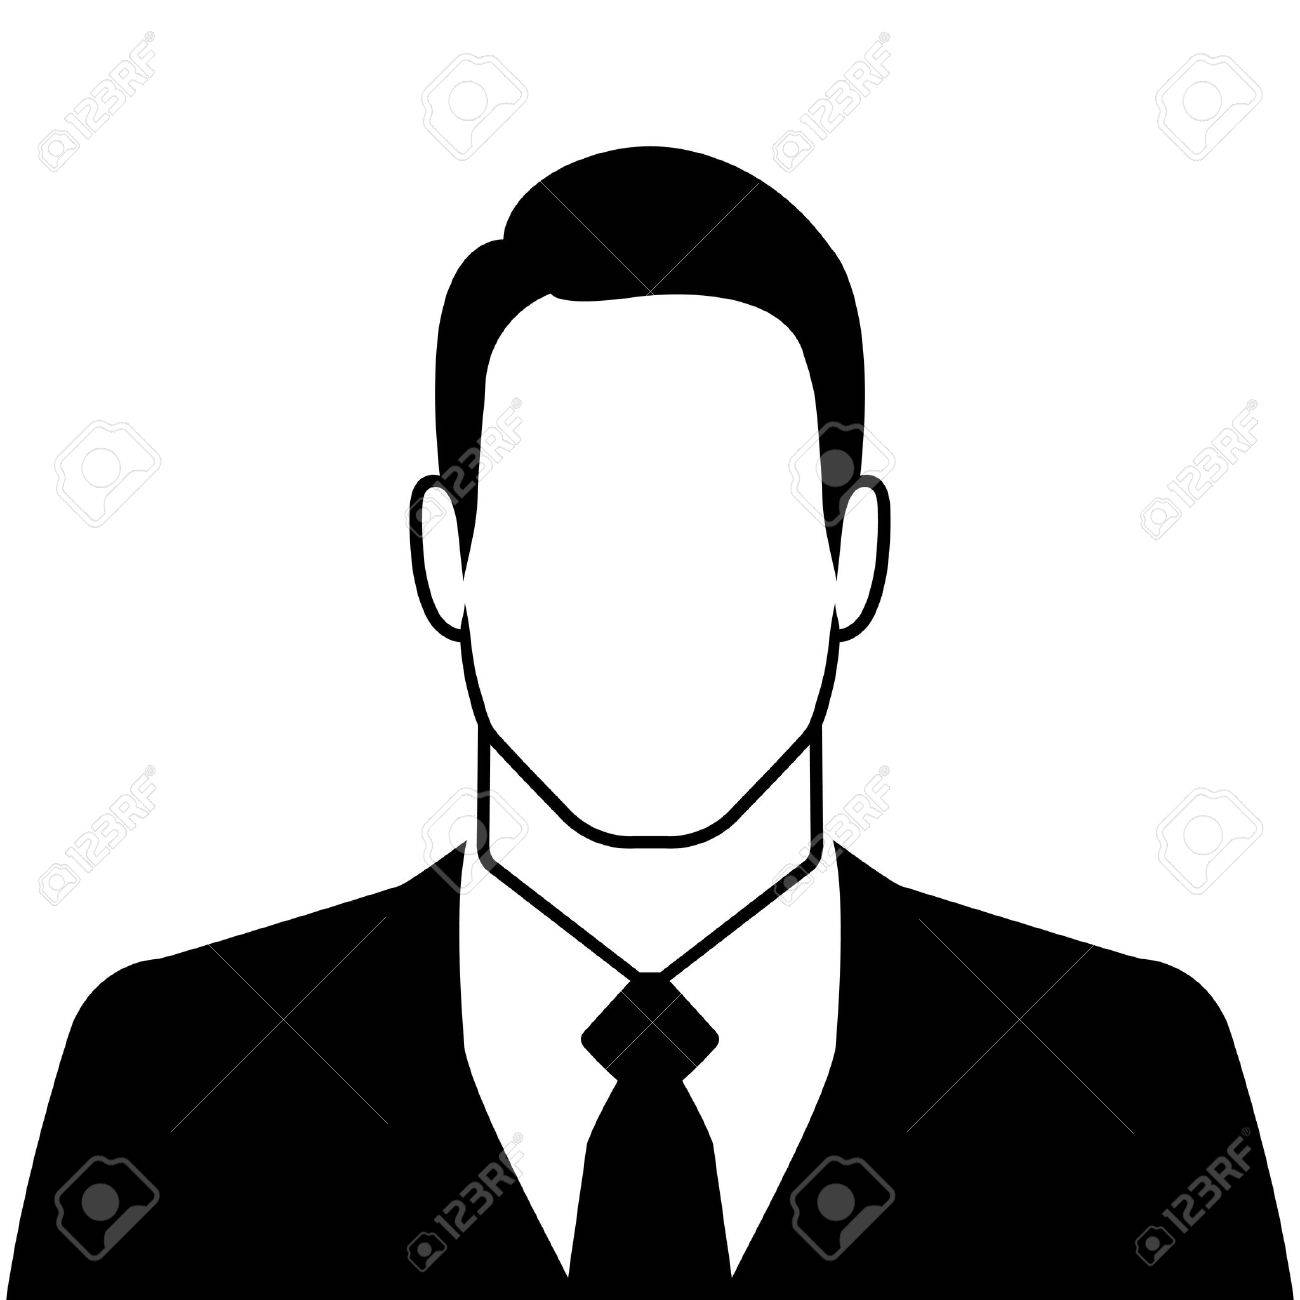 businessman silhouette avatar profile picture on white background